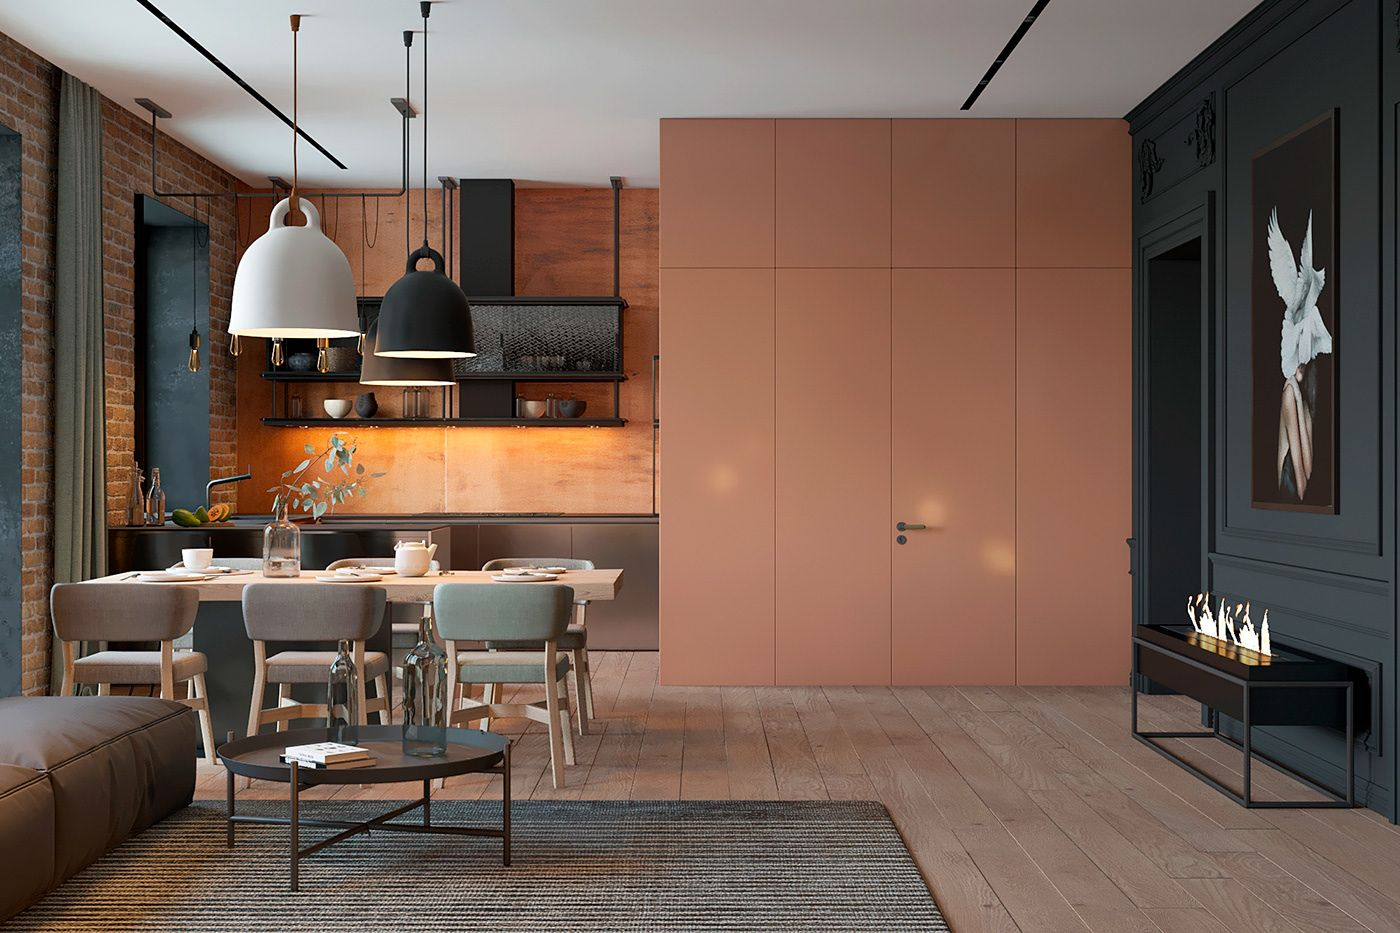 Patrick The Interior In Eclectic And Minimalist Style On Behance Appartement Minimaliste